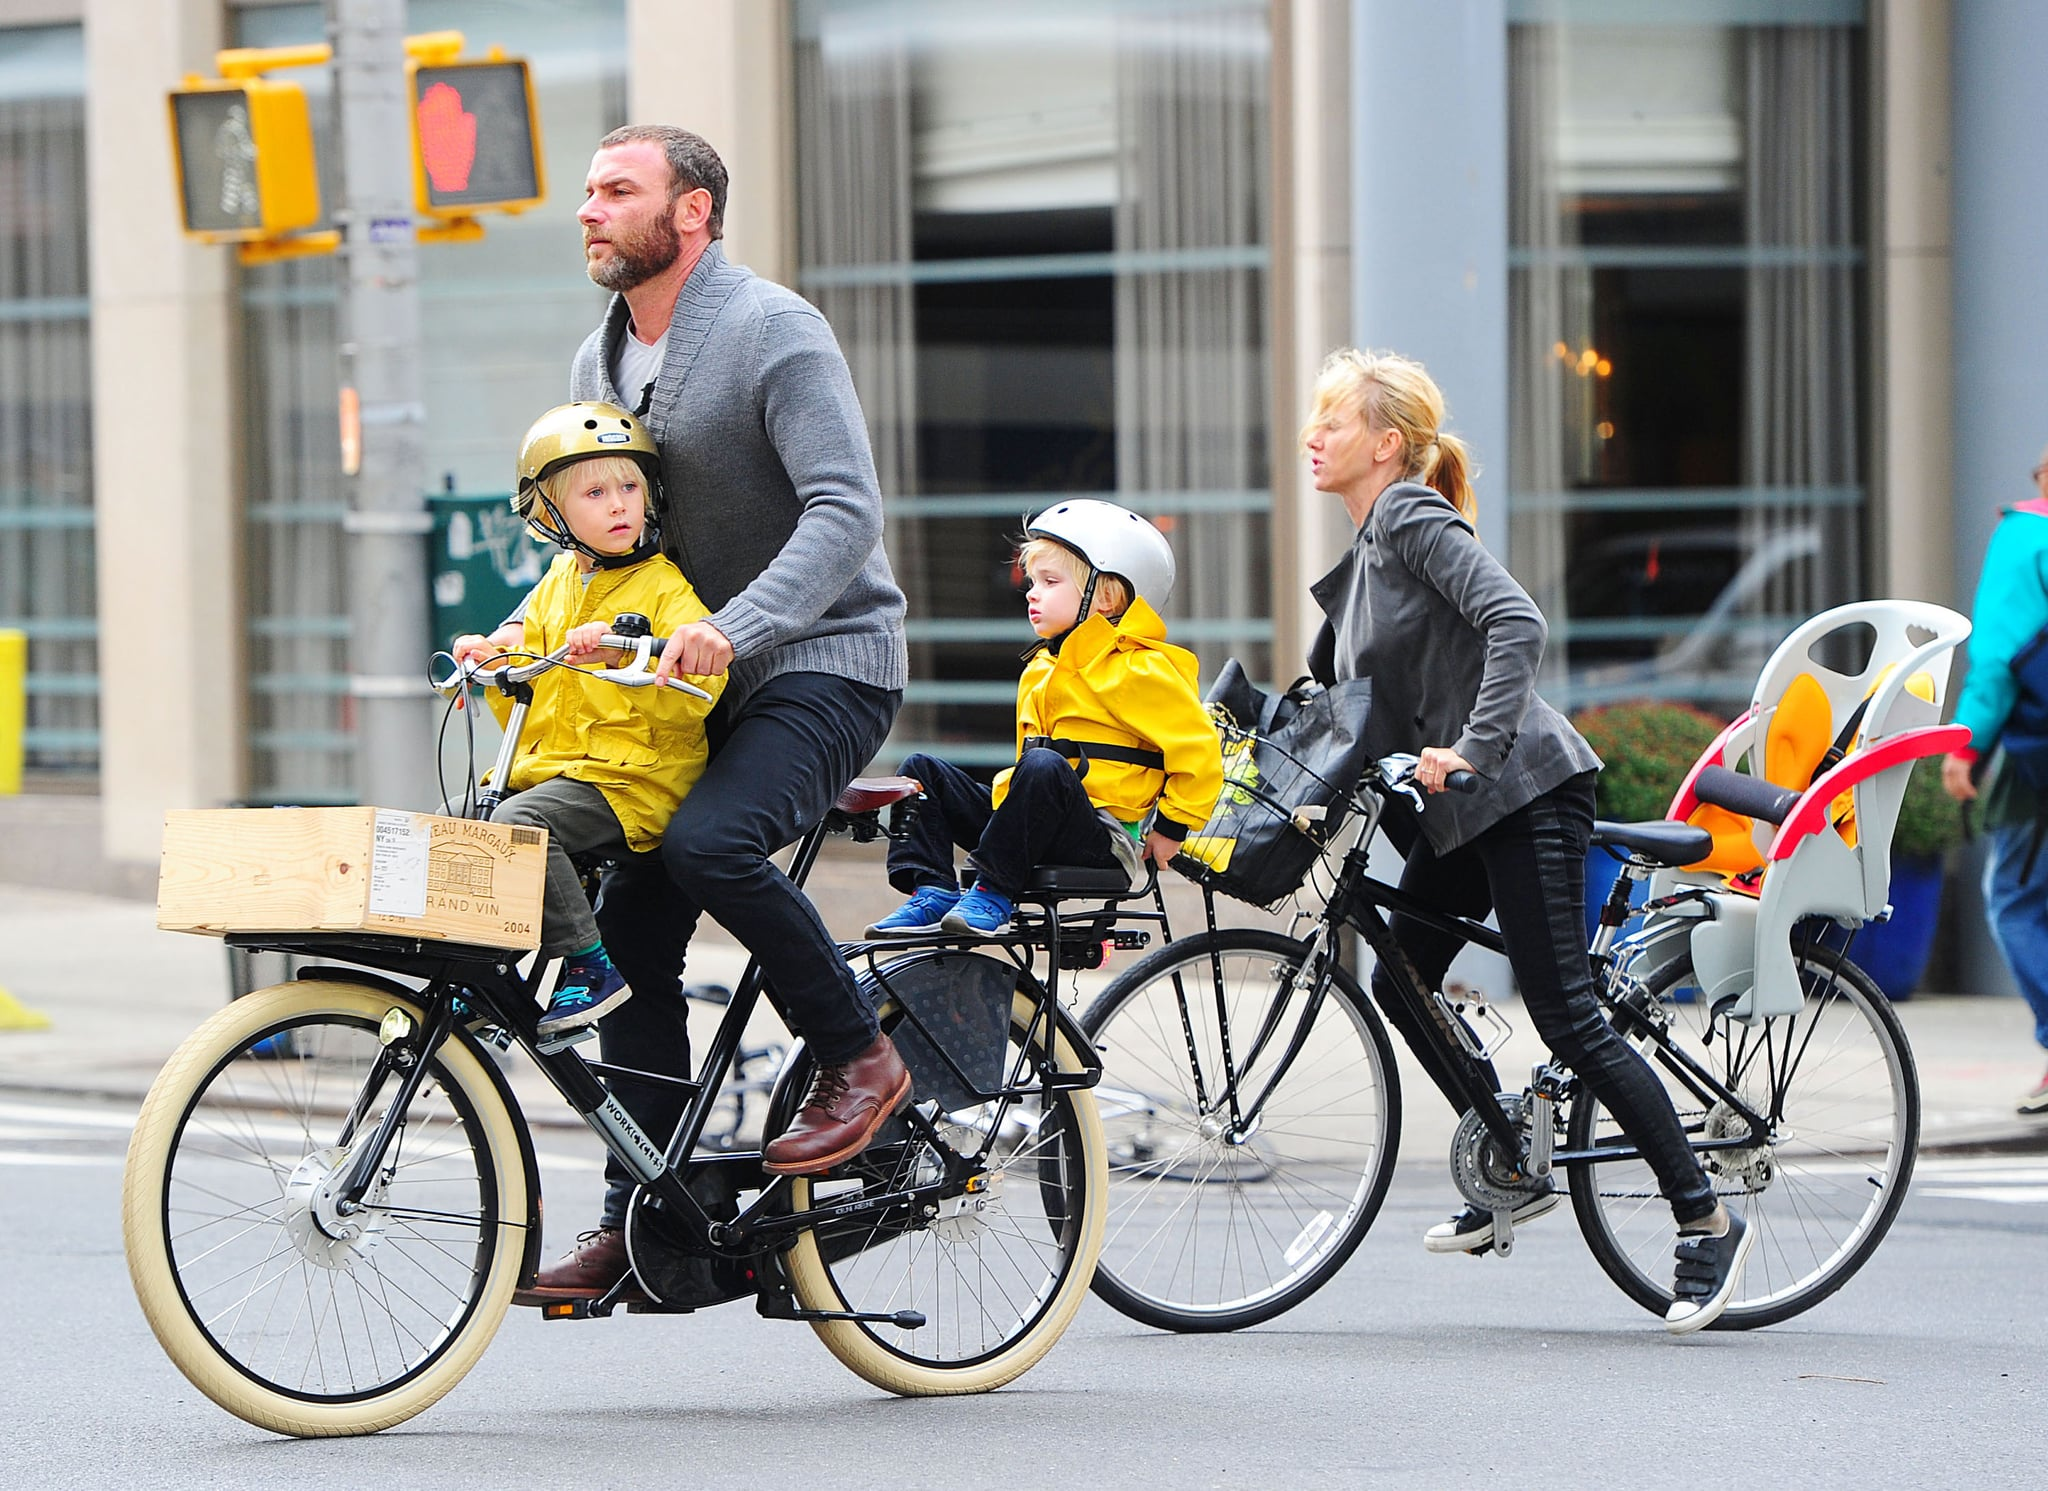 Liev Schreiber and Naomi Watts strapped their boys on their bikes for a ride around NYC.